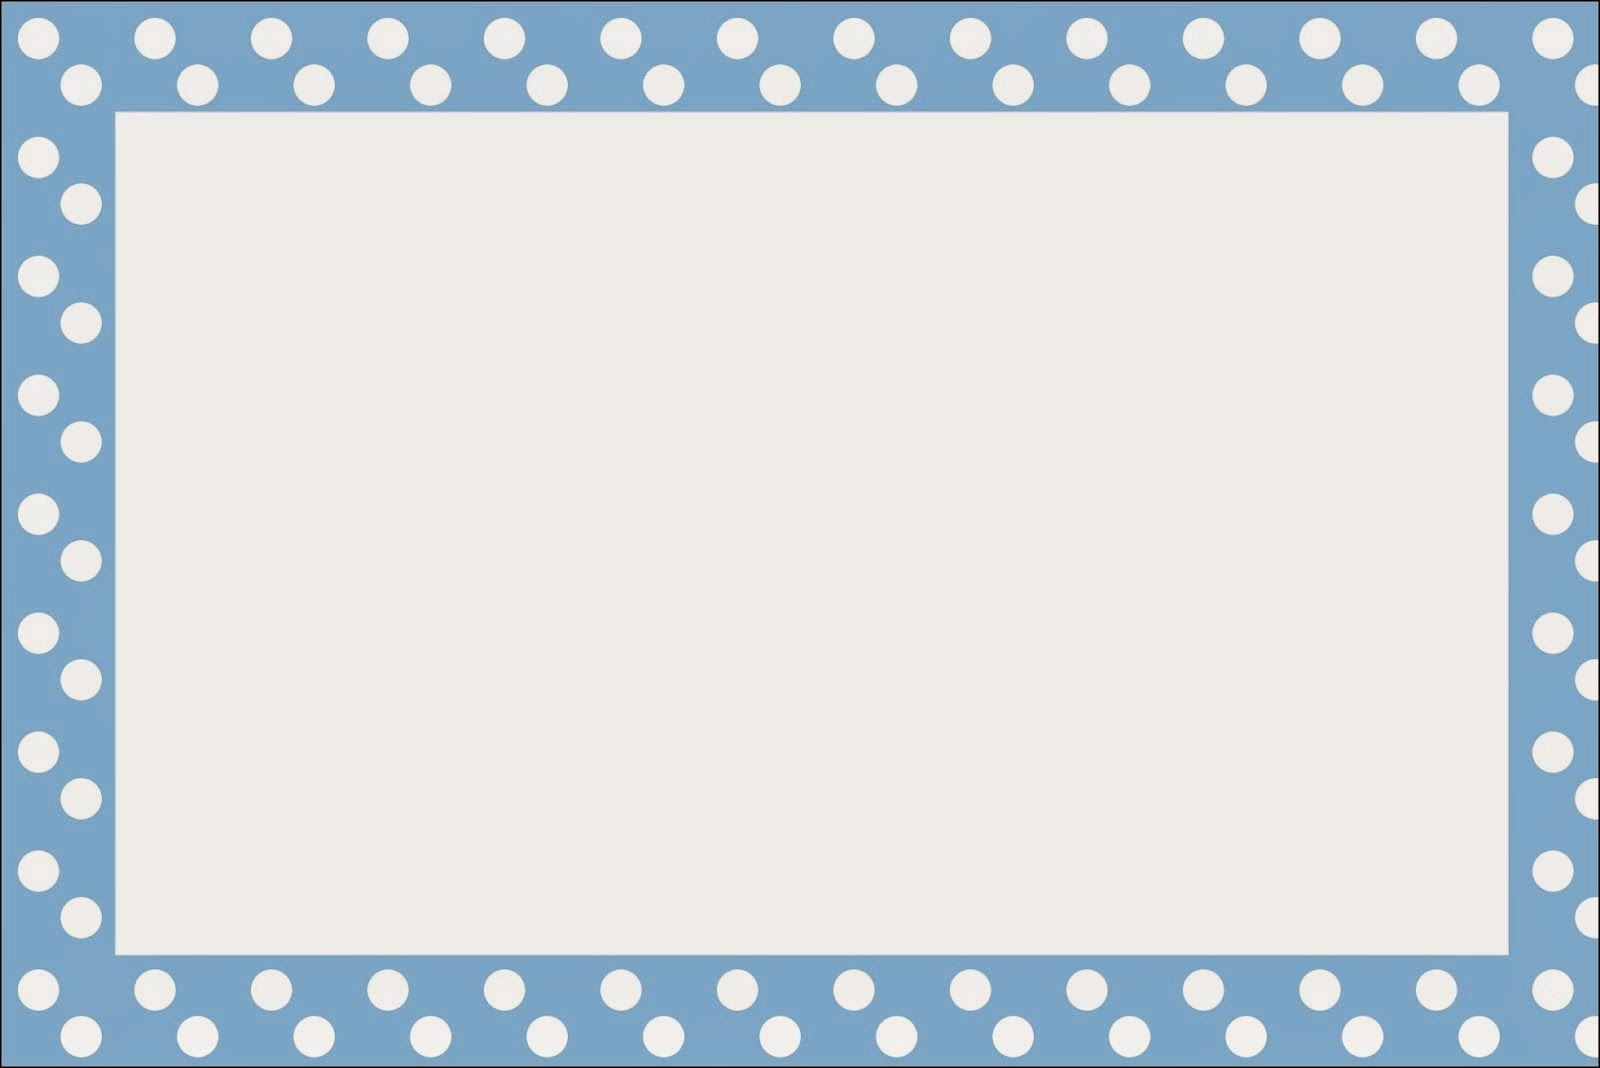 Light Blue with White Polka Dots Free Printable Invitations, Labels or Cards.